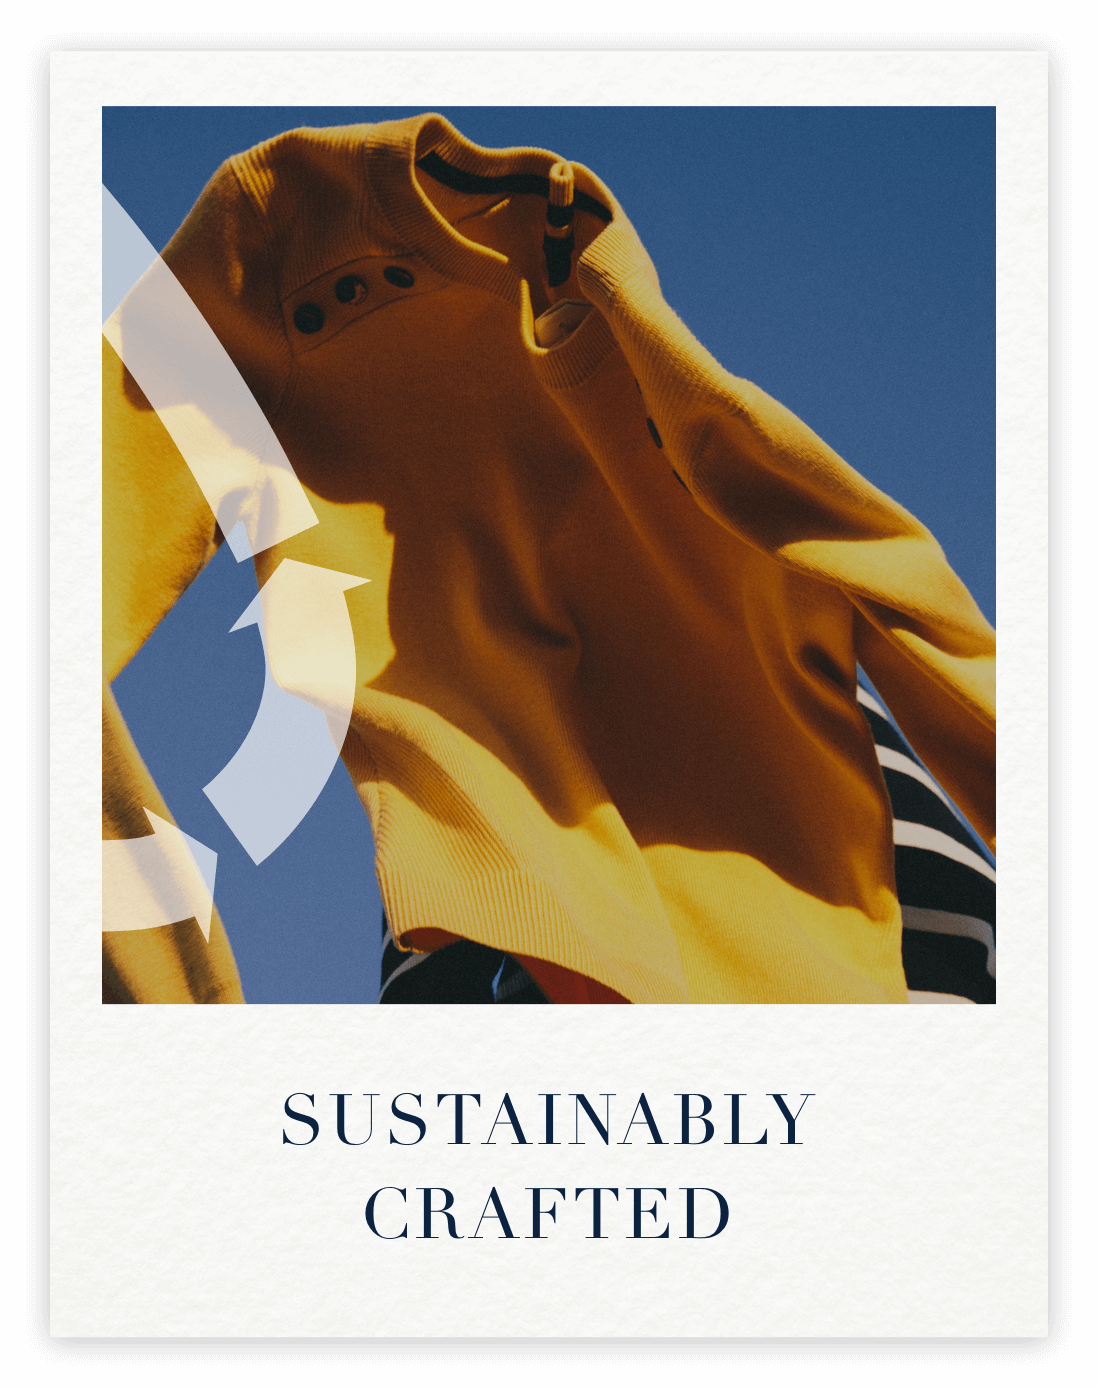 Sustainably Crafted